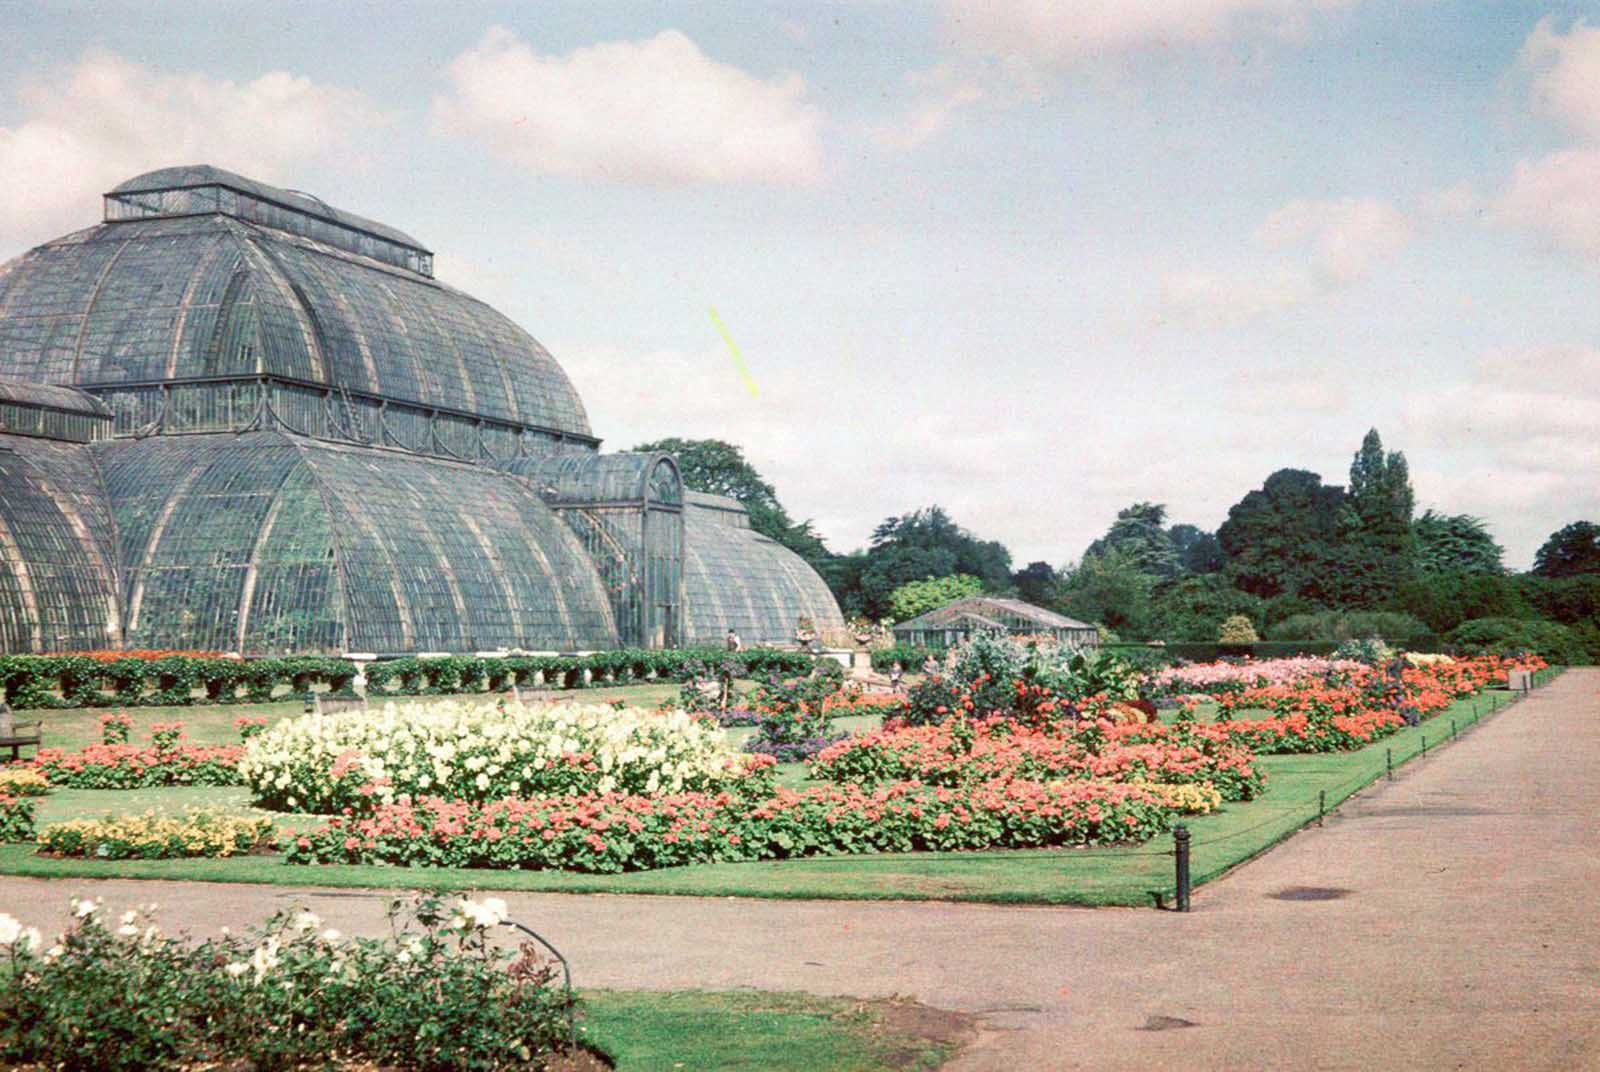 The Palm House in Kew Gardens. Sept. 3, 1945.